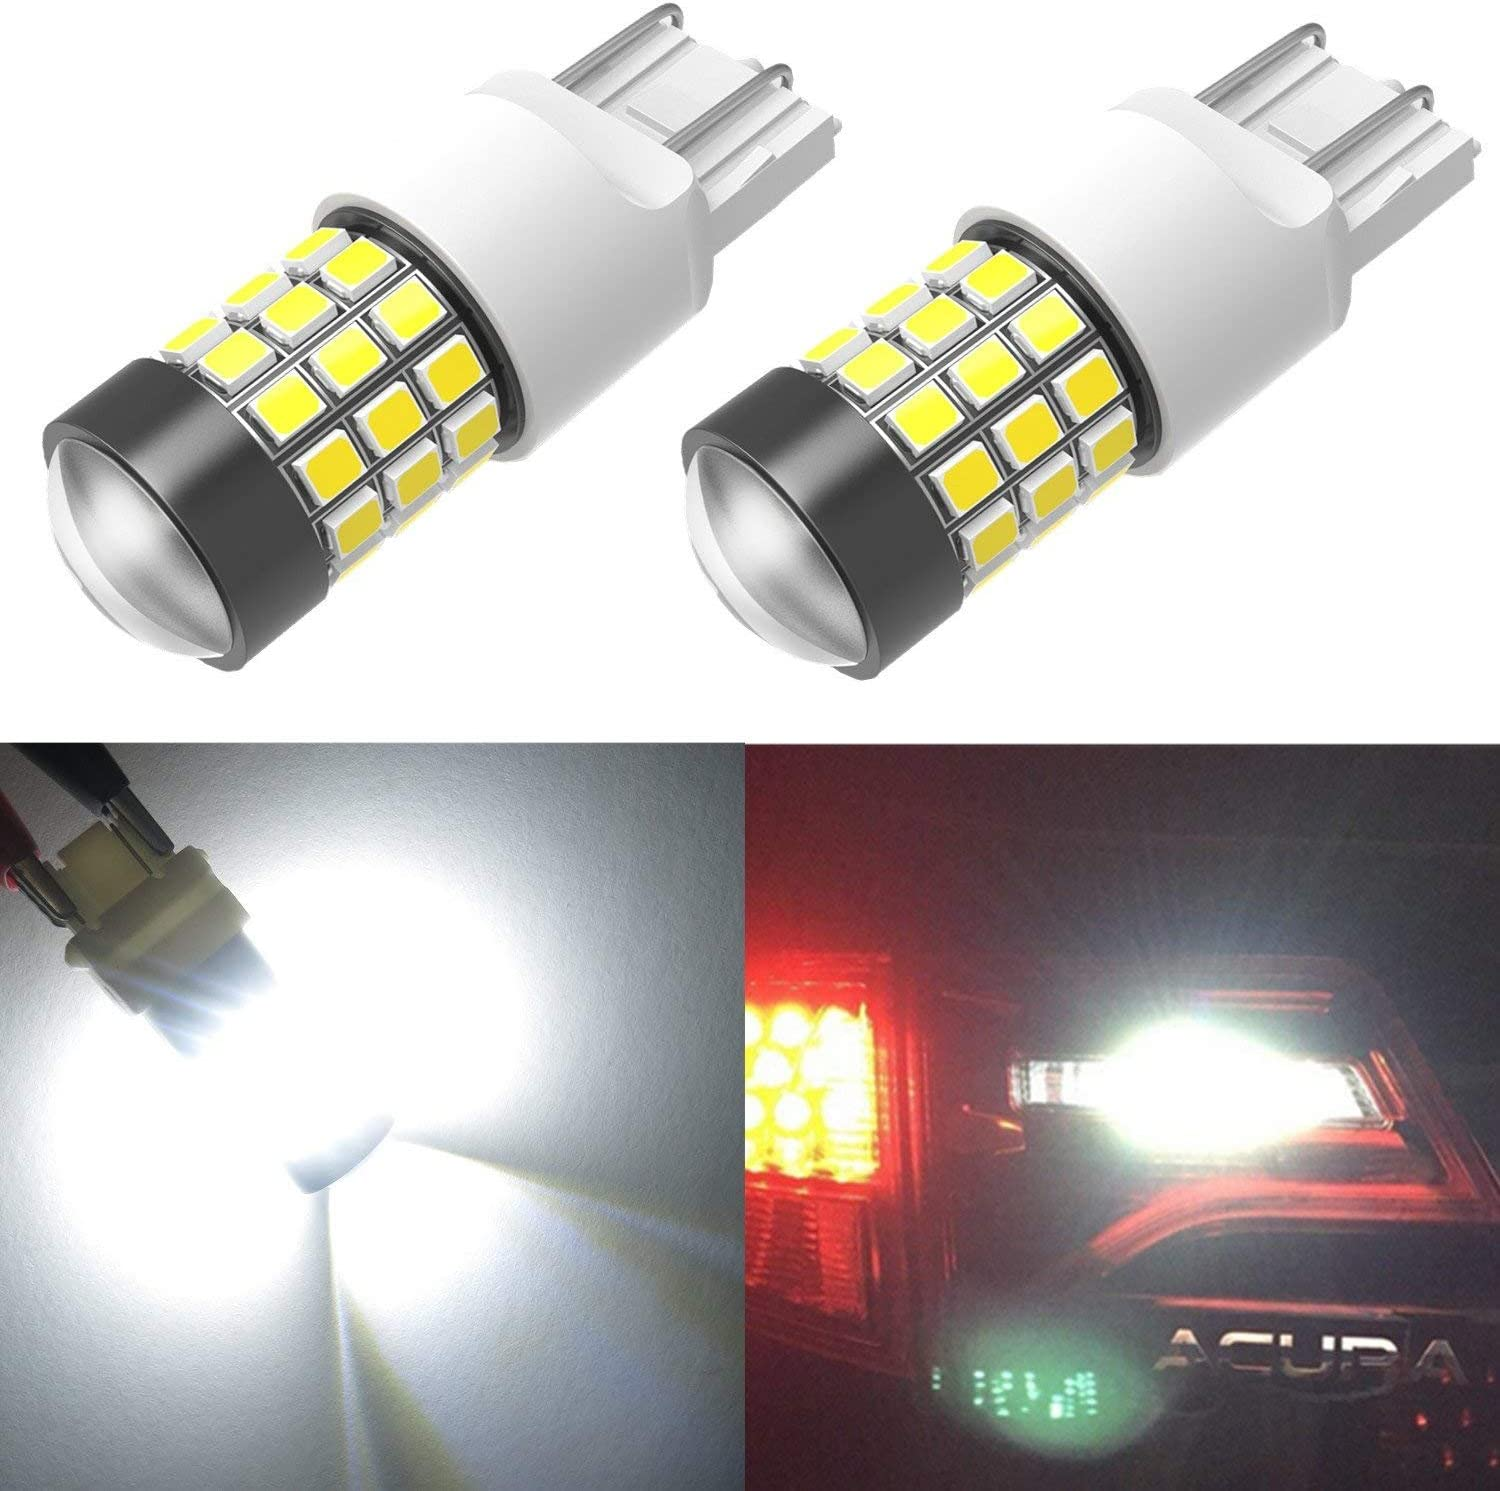 Alla Lighting T20 7443 7440 LED Strobe Flashing Brake Lights Bulbs Super Bright 2835 SMD 12V Dual Filament 6000K Xenon White Blinking Stop Lights for Cars, Trucks 7441 7444 7442